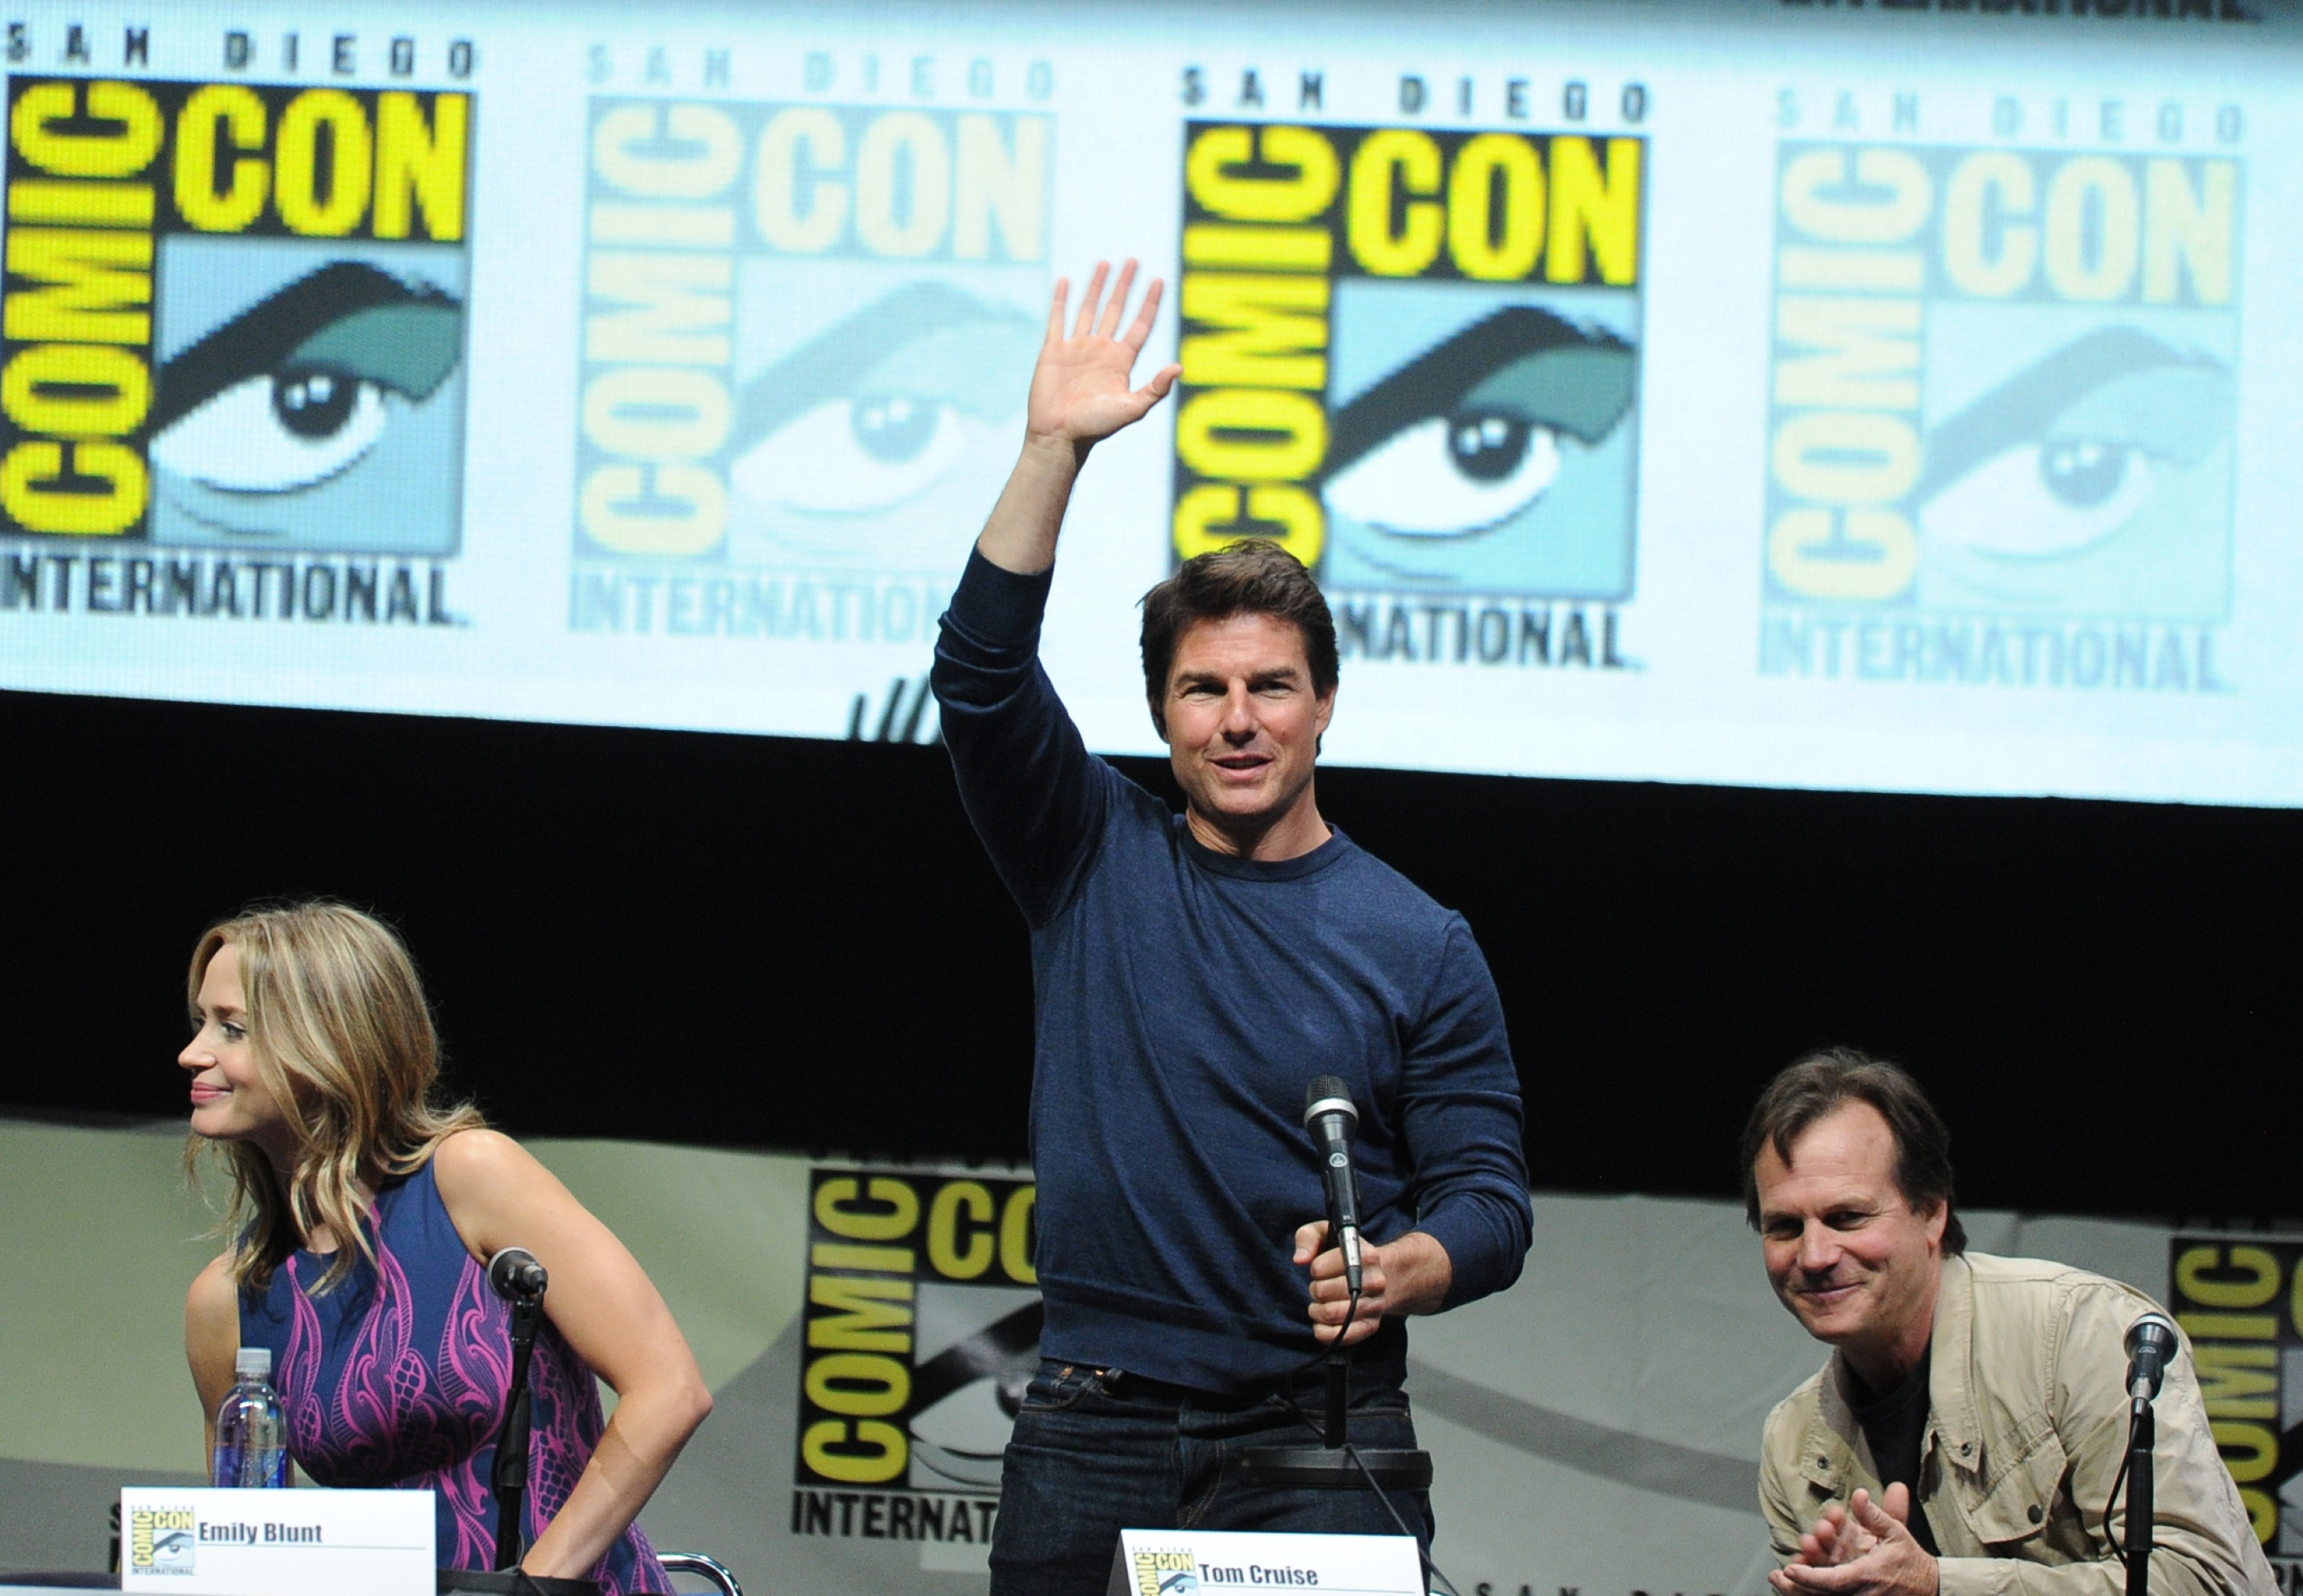 Tom Cruise, center, at Comic-Con 2013 (Photo: Kevin Winter/Getty